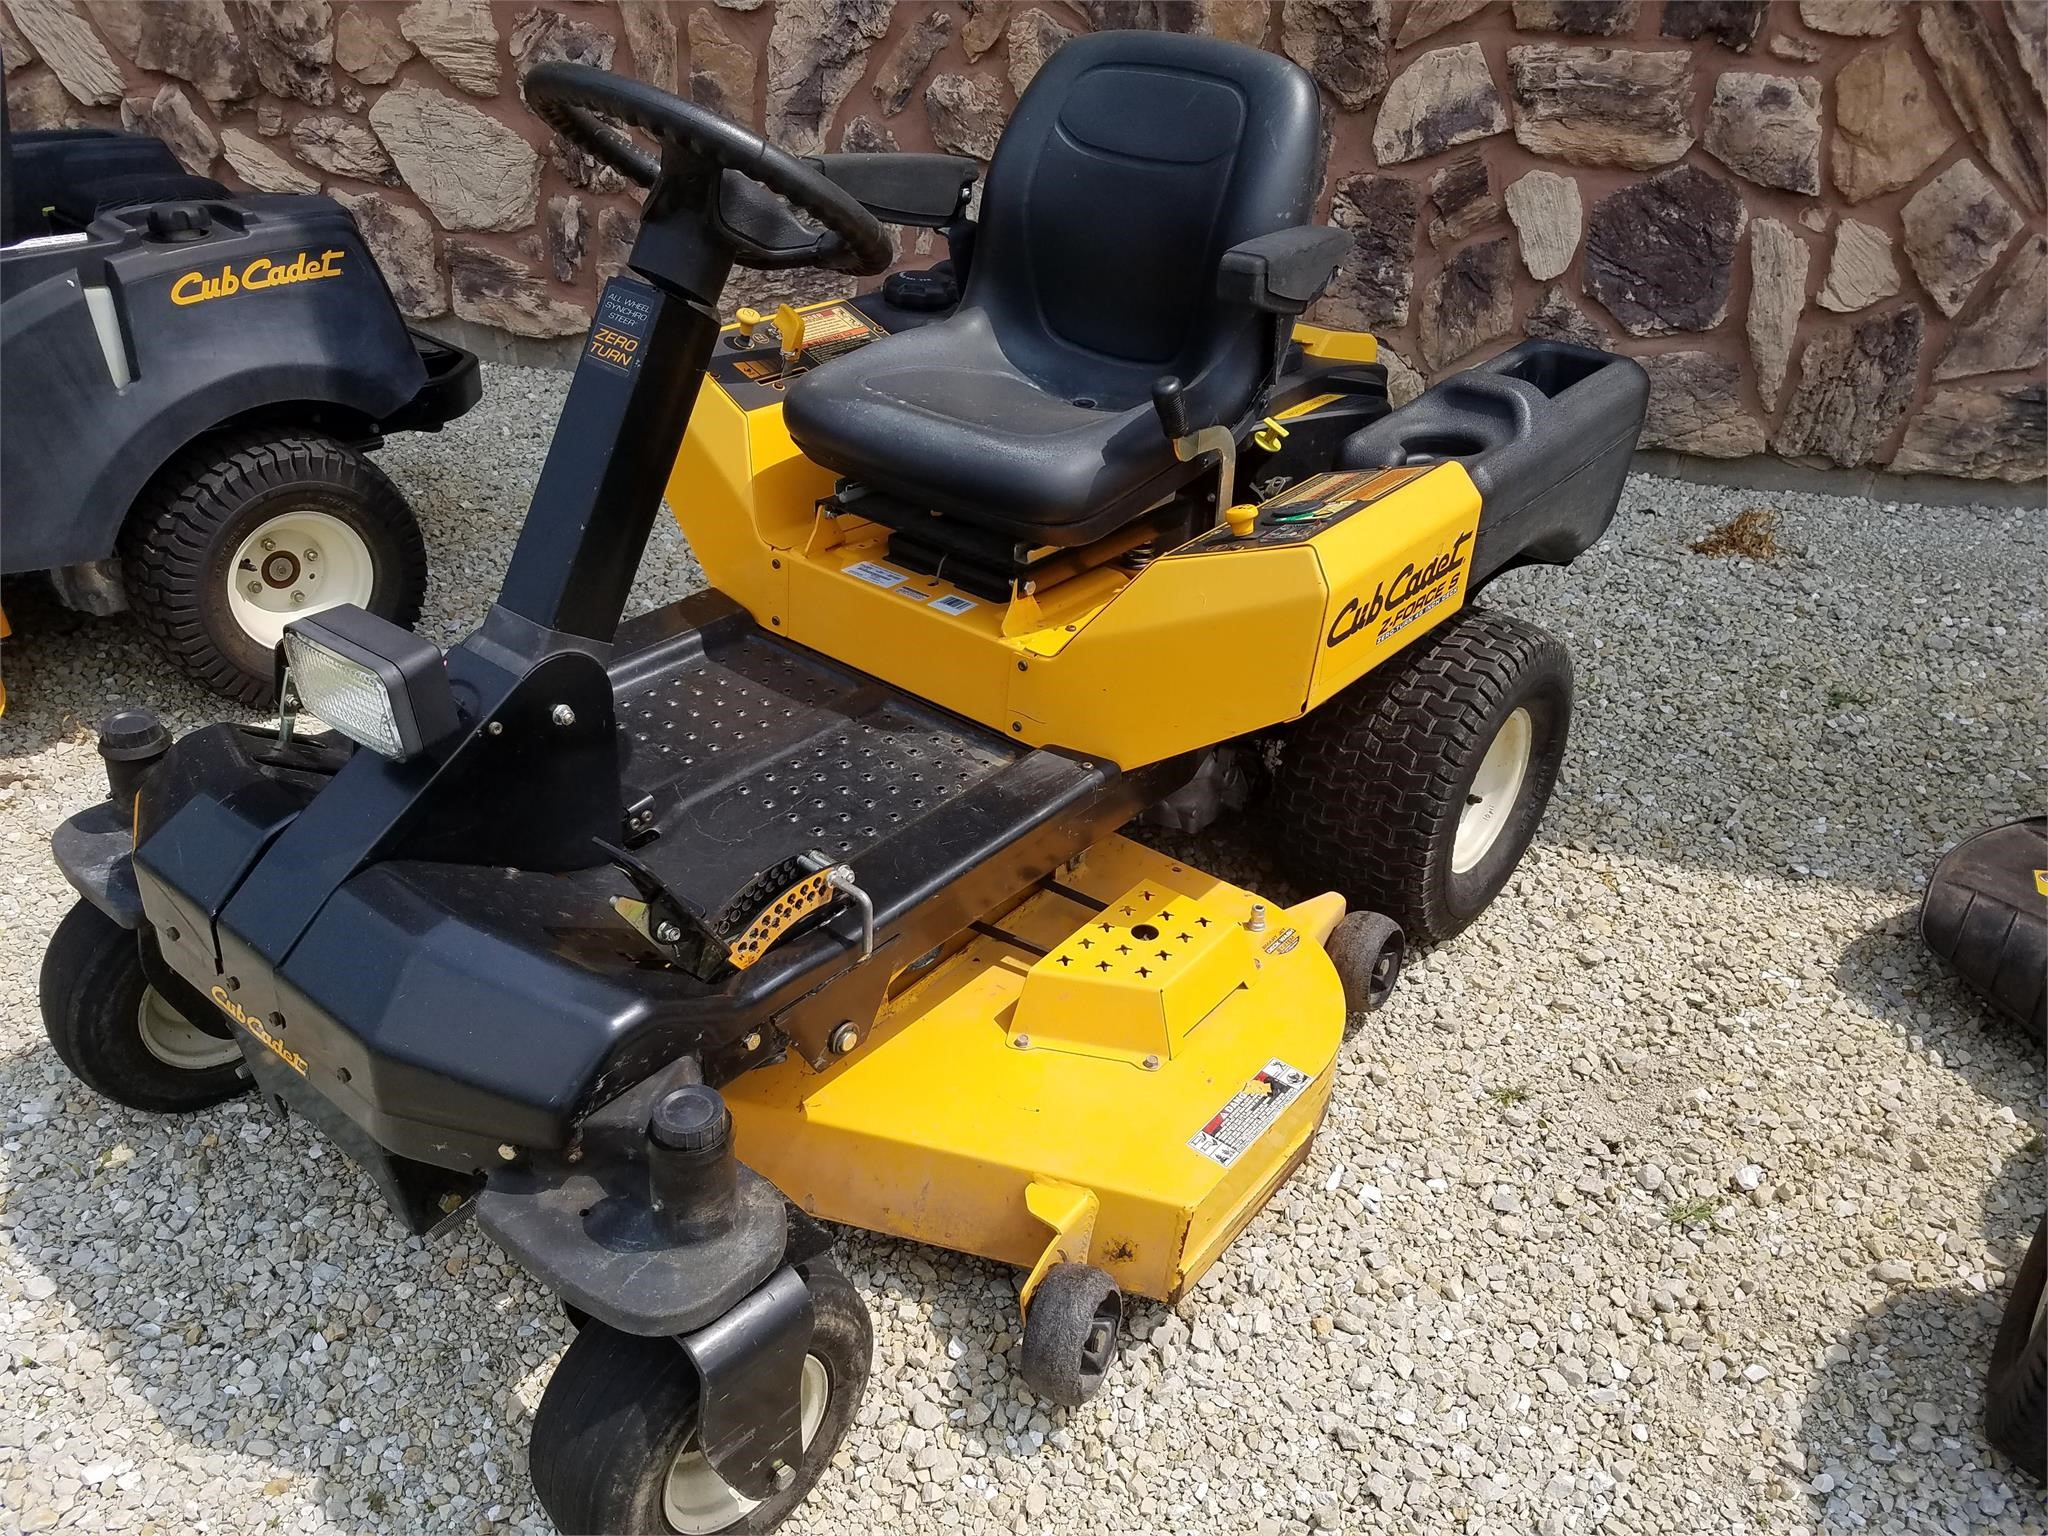 2010 Cub Cadet Z-Force 48 Lawn and Garden